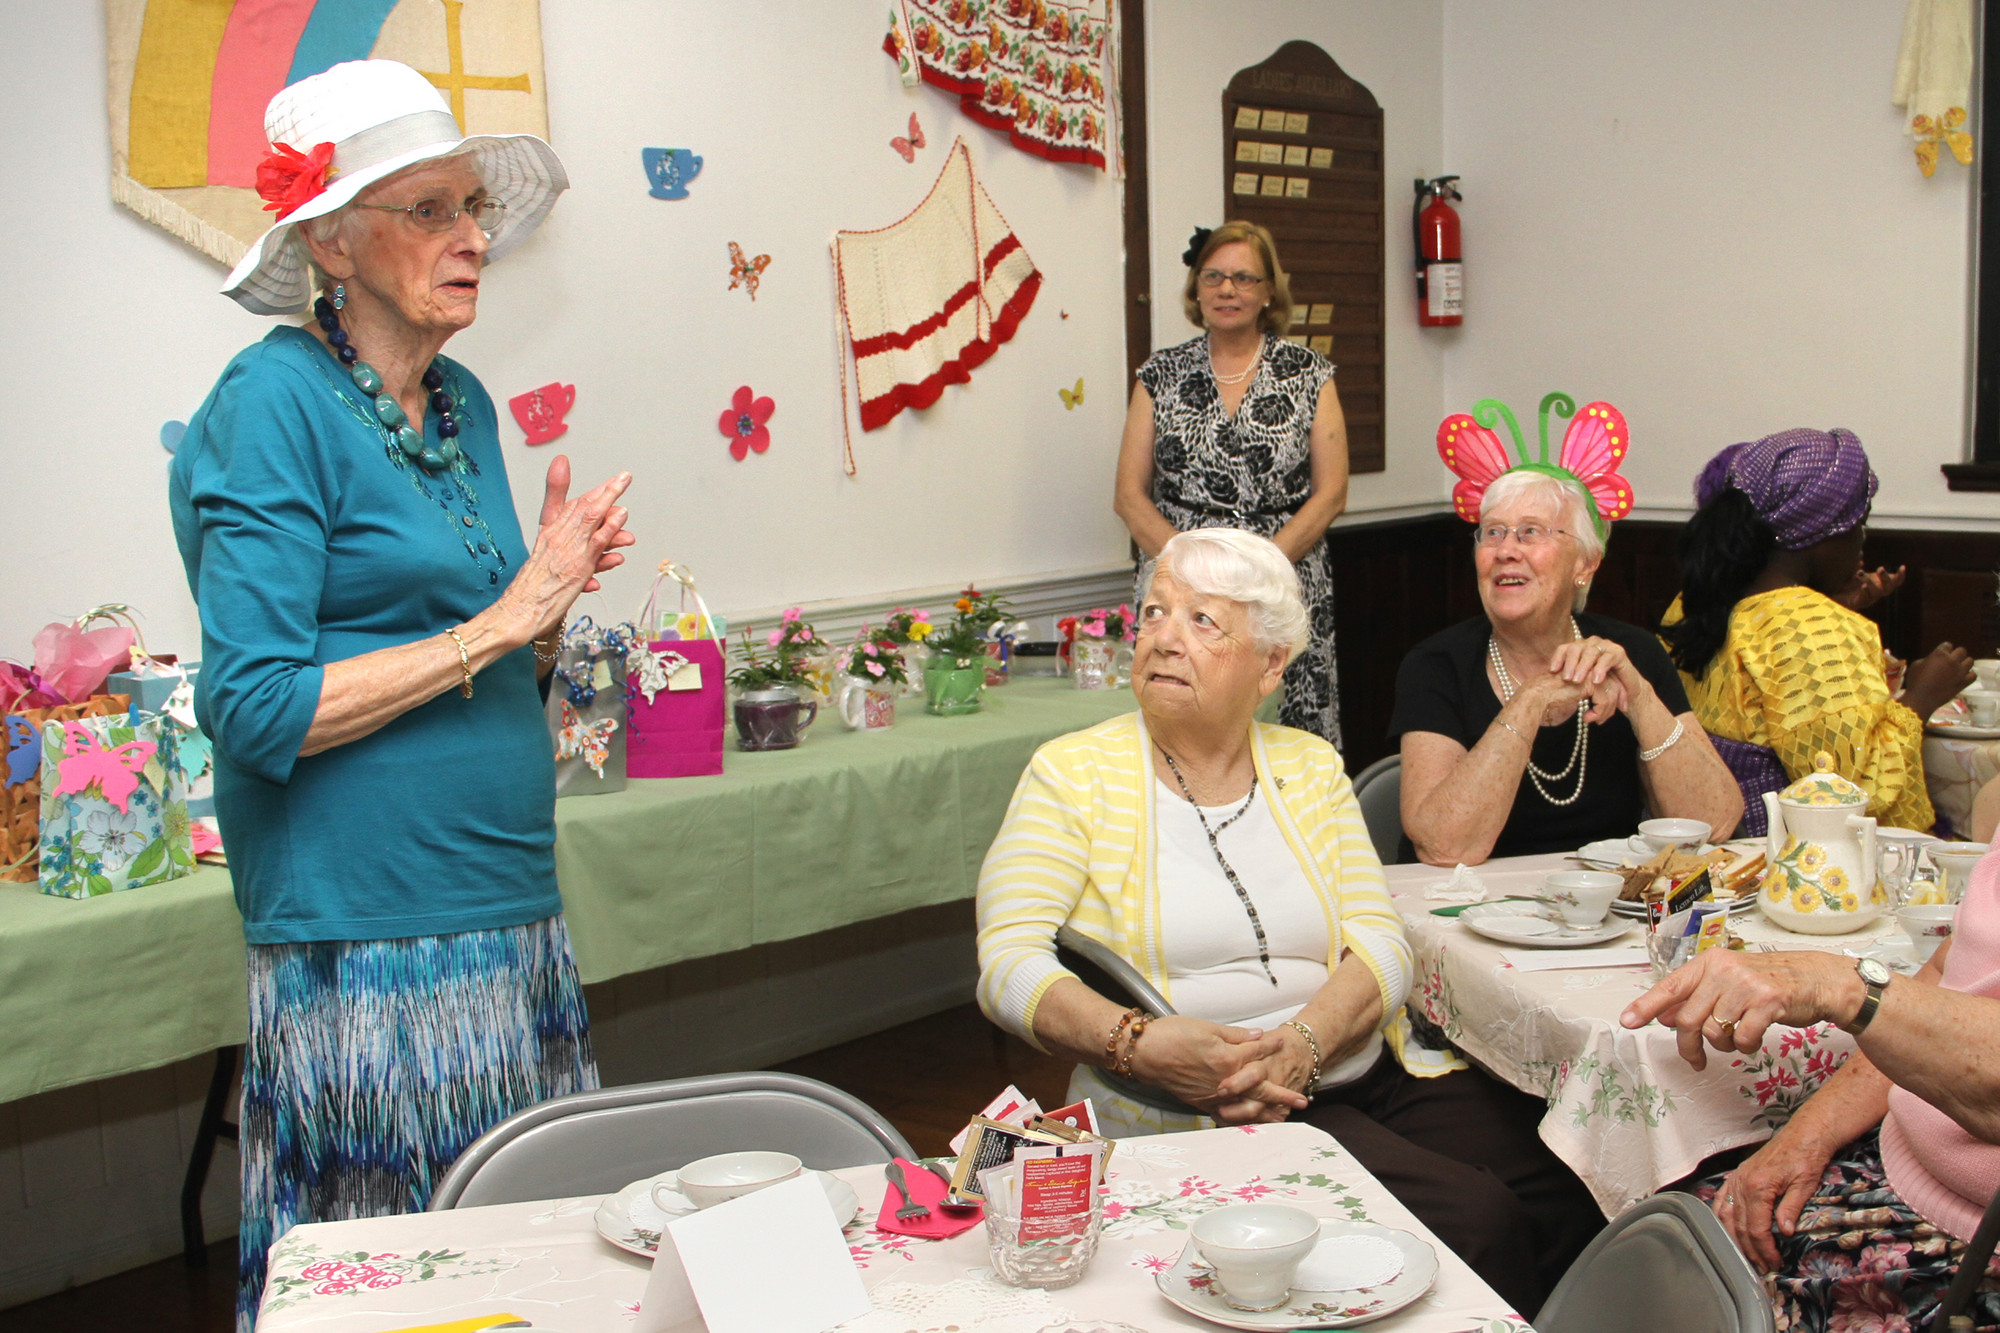 Audrey Conlon welcomed the ladies to the annual Victorian Tea.